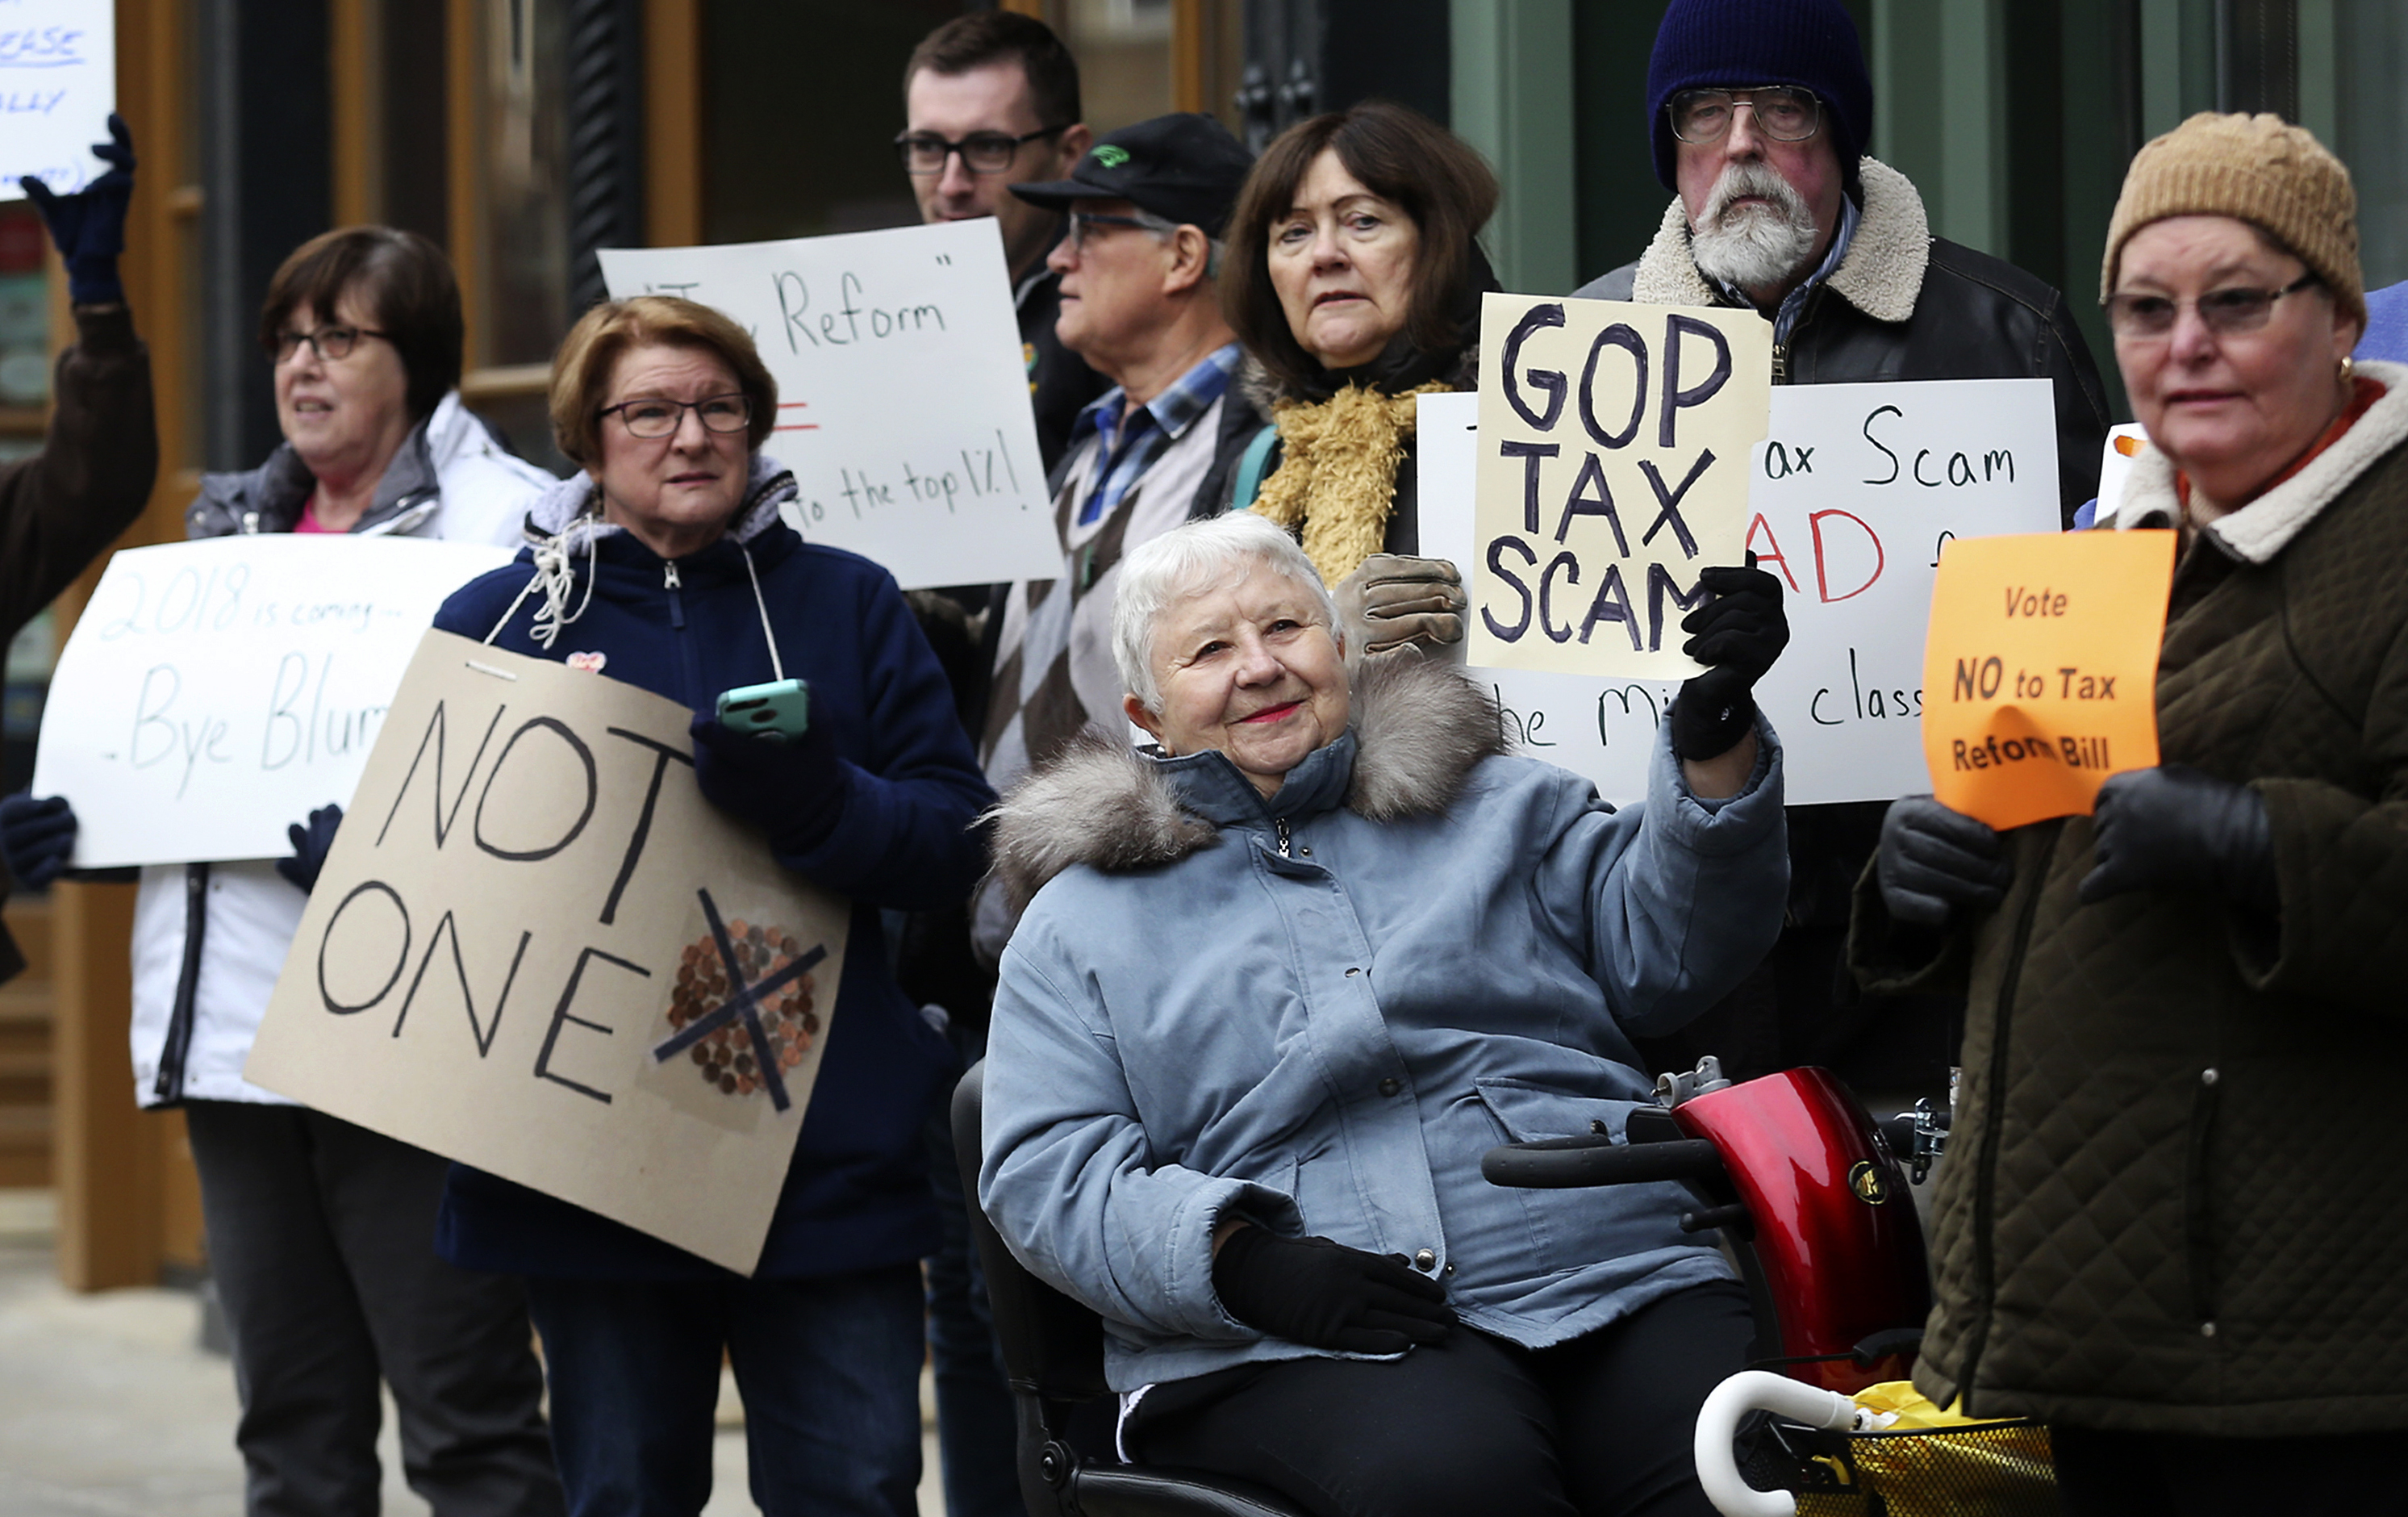 Marilyn Schroeder, center, gathers with other protesters to oppose the Republican tax plan.